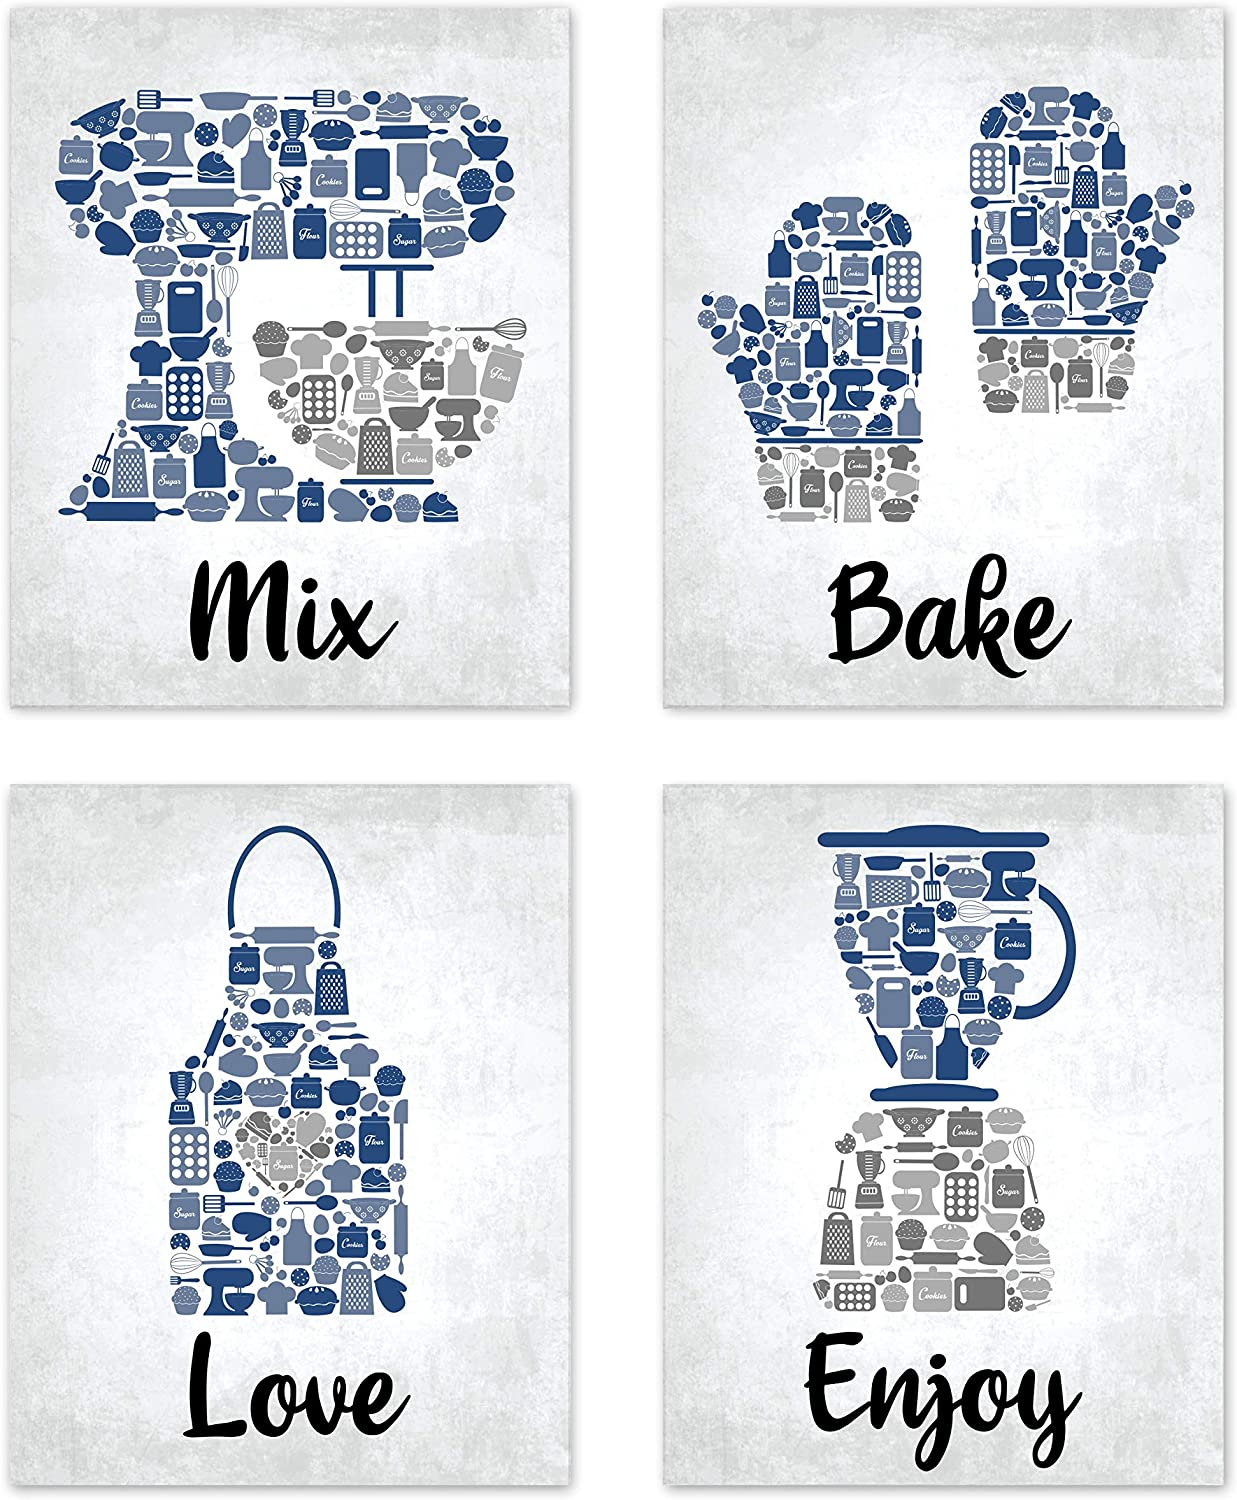 """Bake Mosaic Blue Cobalt Aqua Grey Retro Inspirational Restaurant Utensil Food Wall Art Chef Baking Prints Posters Signs Sets for Rustic Country Kitchen Decor Home House Decor Decoration Dining Room Funny Sayings Quotes Unframed 8"""" x 10"""""""